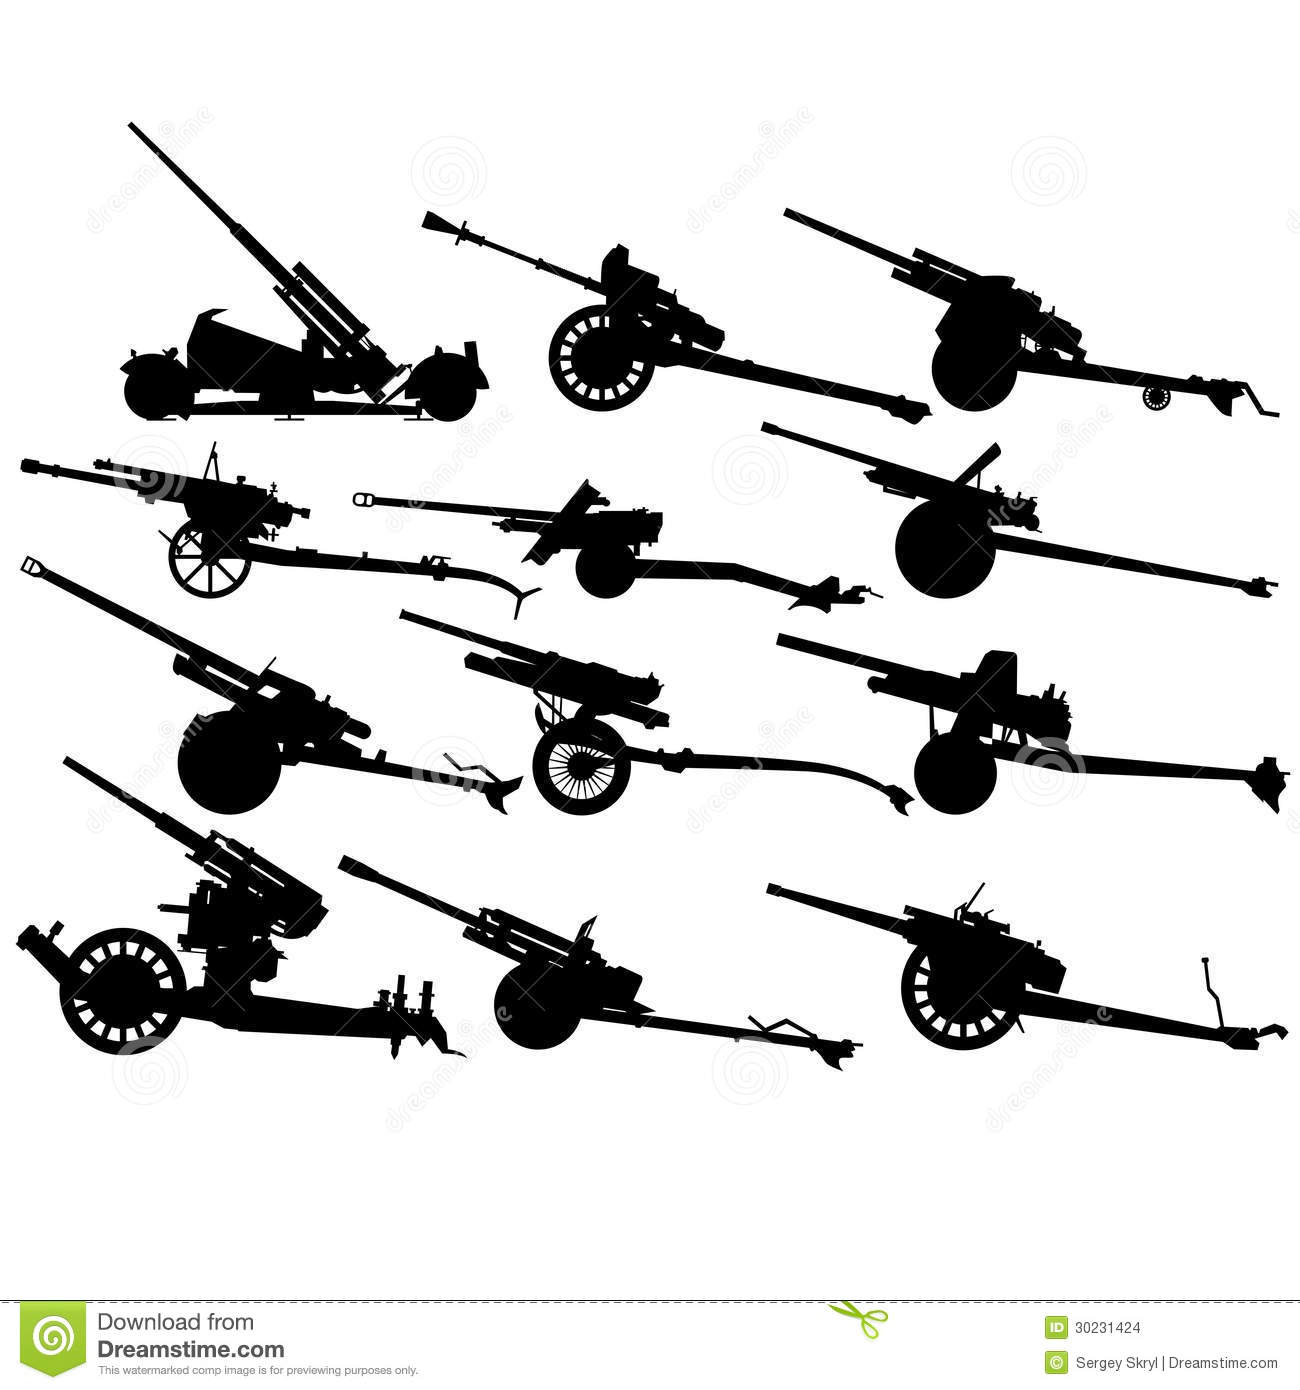 Antitank Artillery 2nd World War 1 Stock Vector